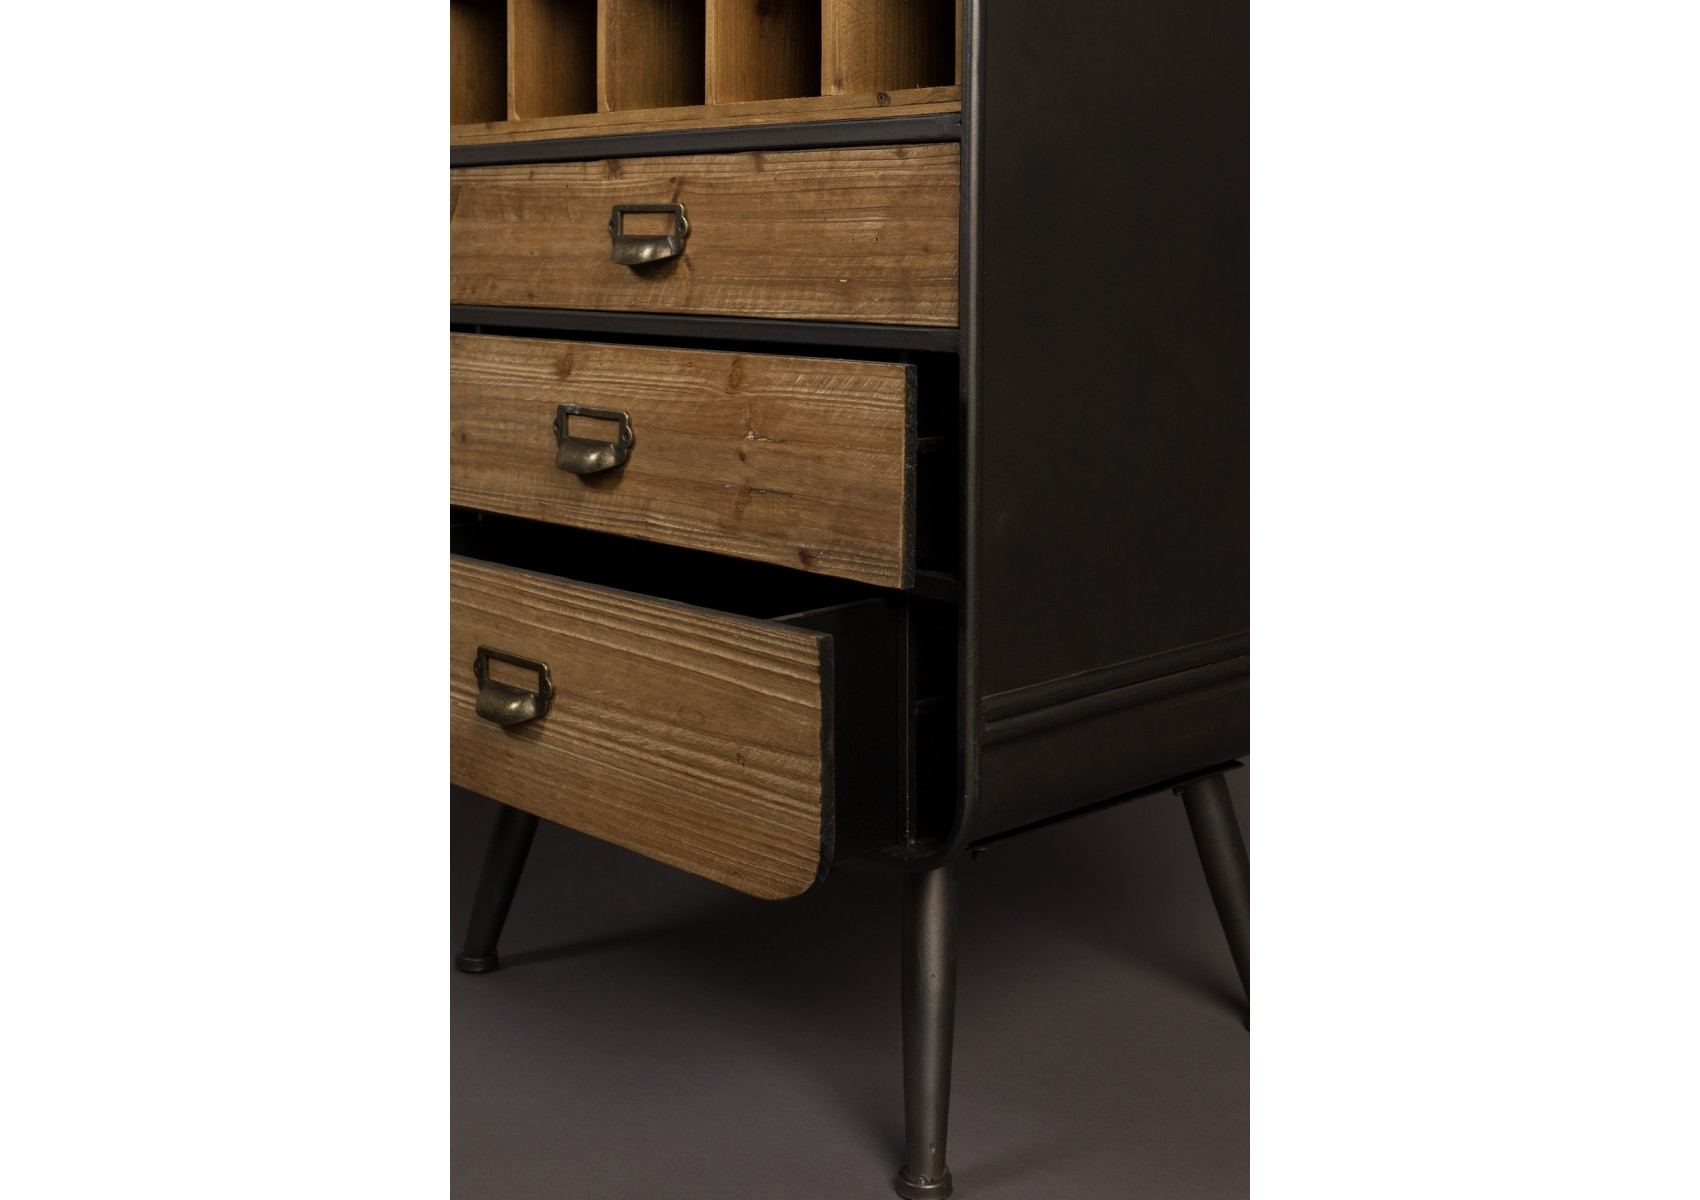 meuble bouteilles porte bouteilles industriel fabriqu en mtal pour bars with meuble bouteilles. Black Bedroom Furniture Sets. Home Design Ideas